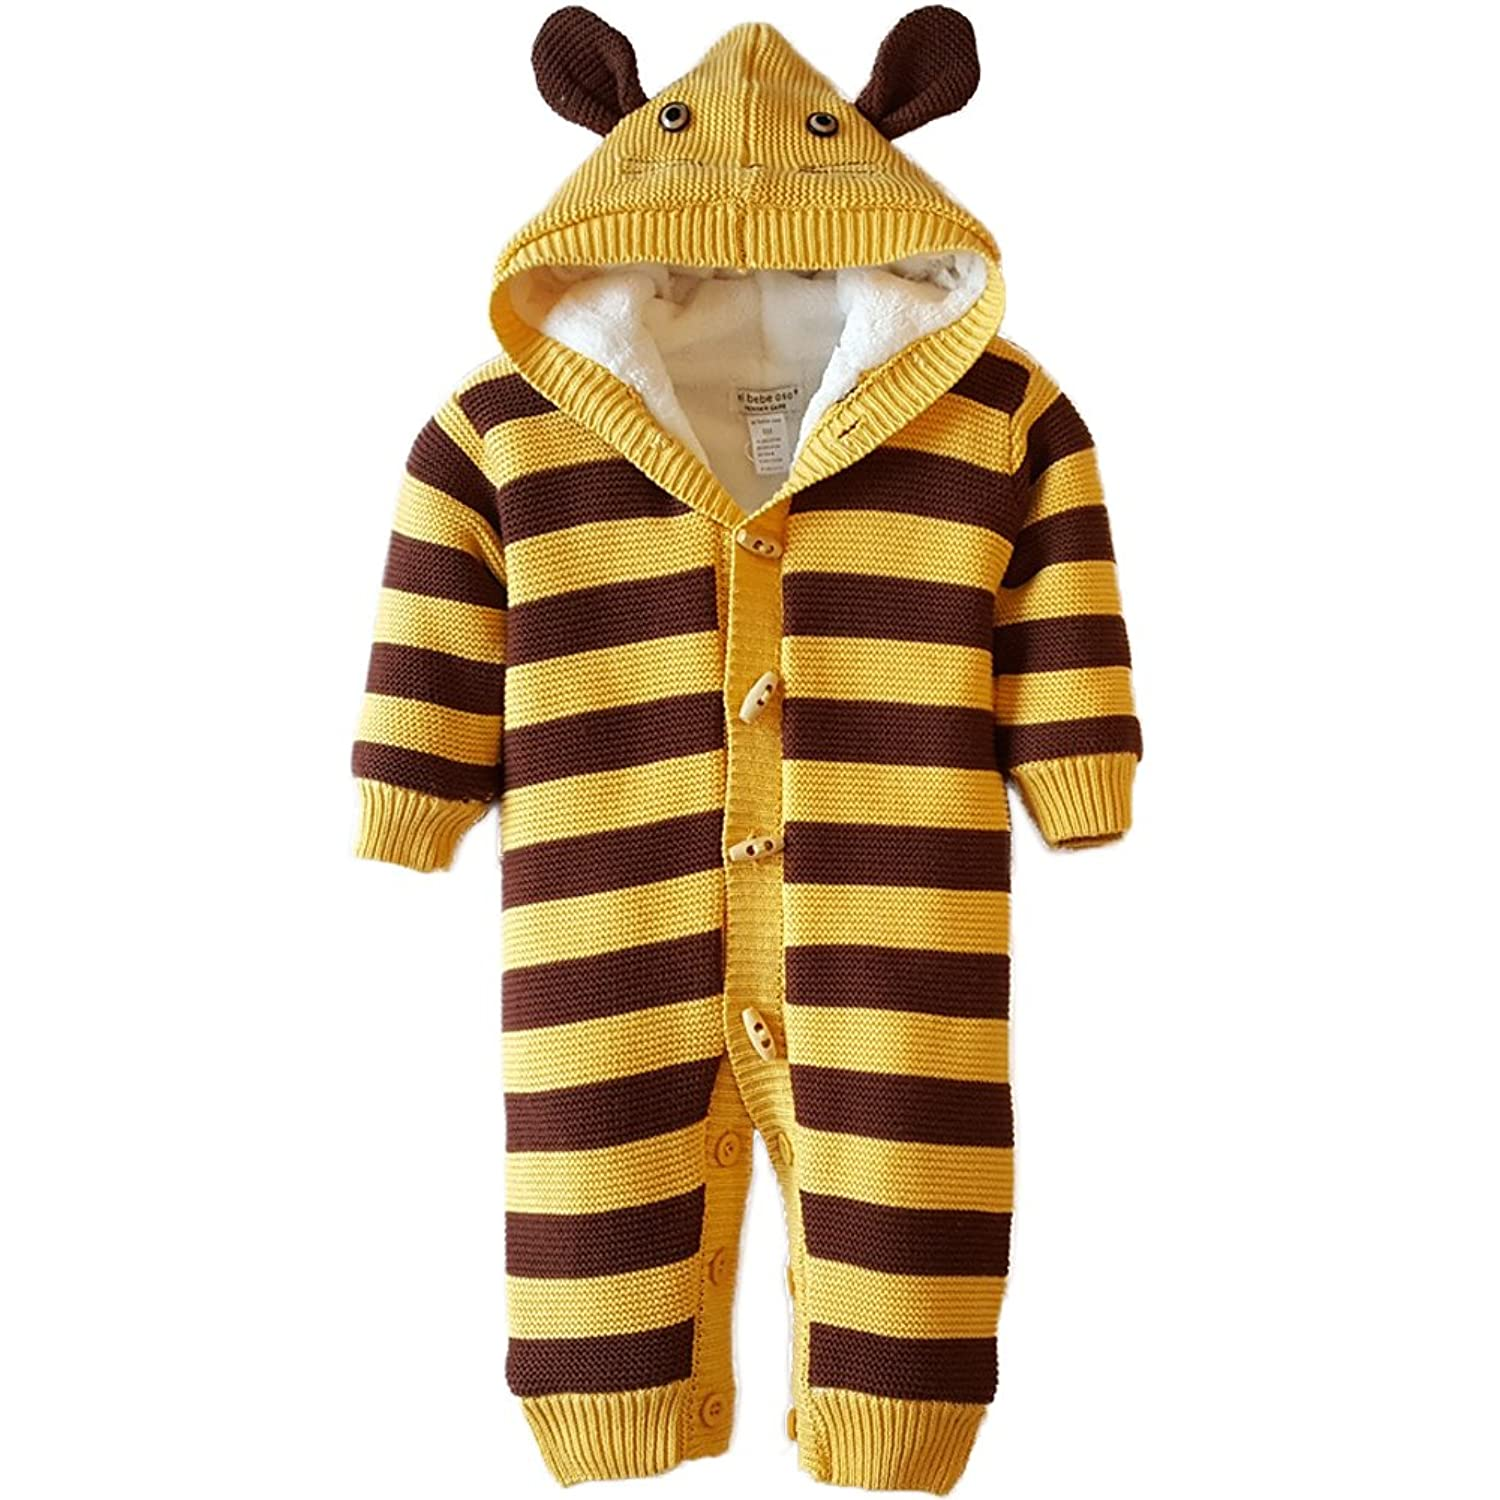 6e365489777a Healthtex Baby Infant Boy 3 In 1 Ski Snowboard Jacket With Removable ...